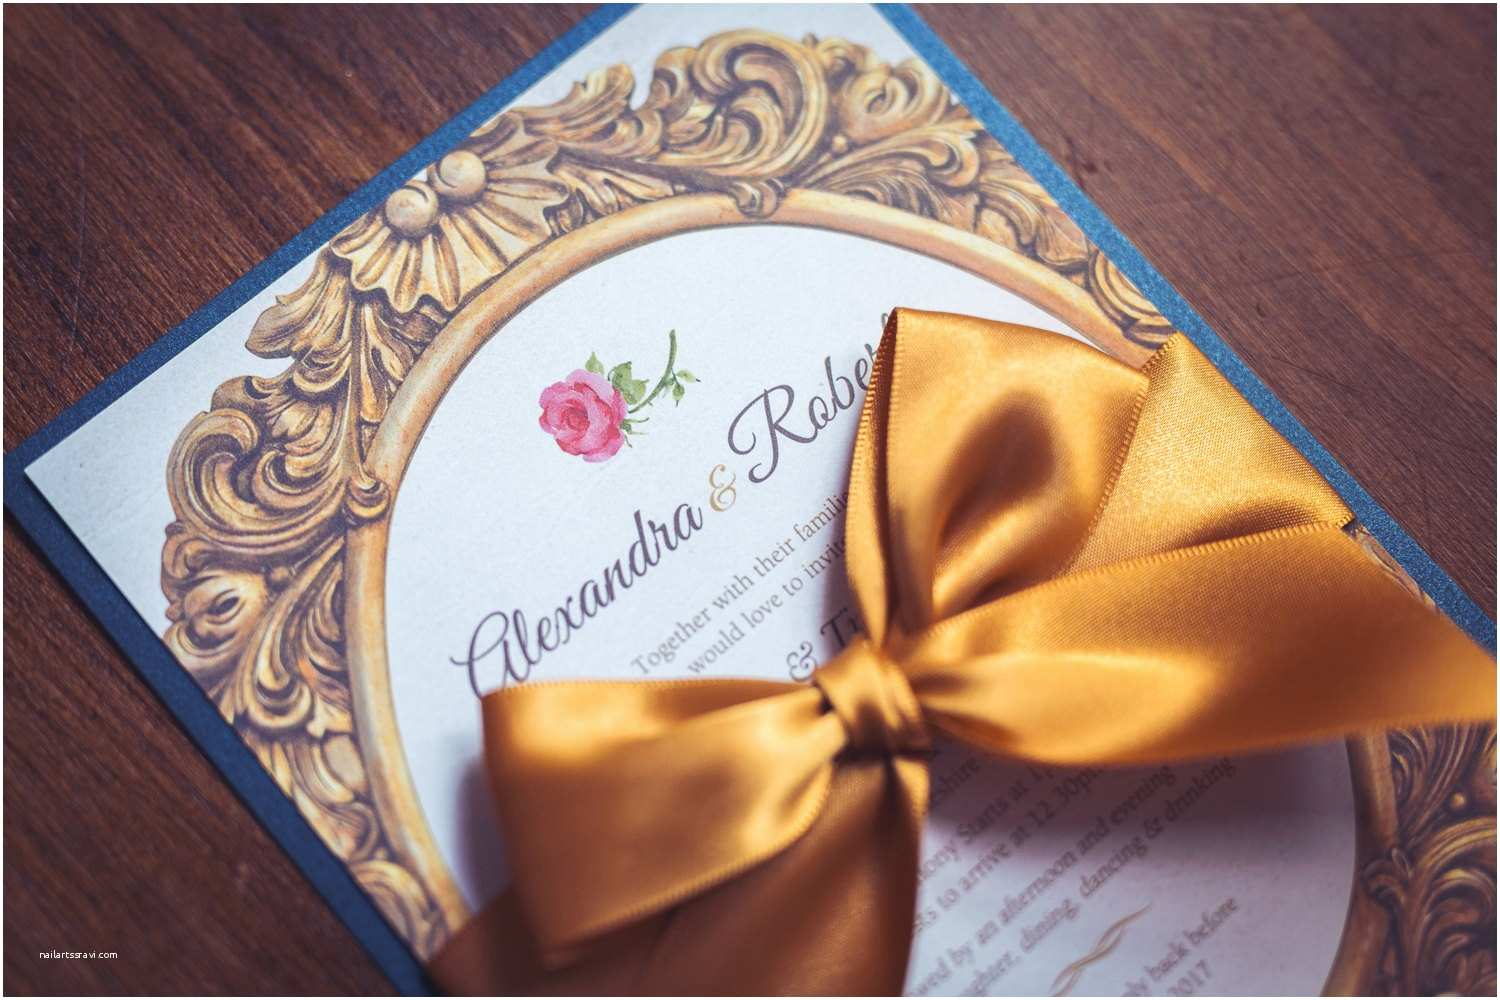 Beauty and the Beast Inspired Wedding Invitations Invitation Inspired by Beauty and the Beast Fairytale